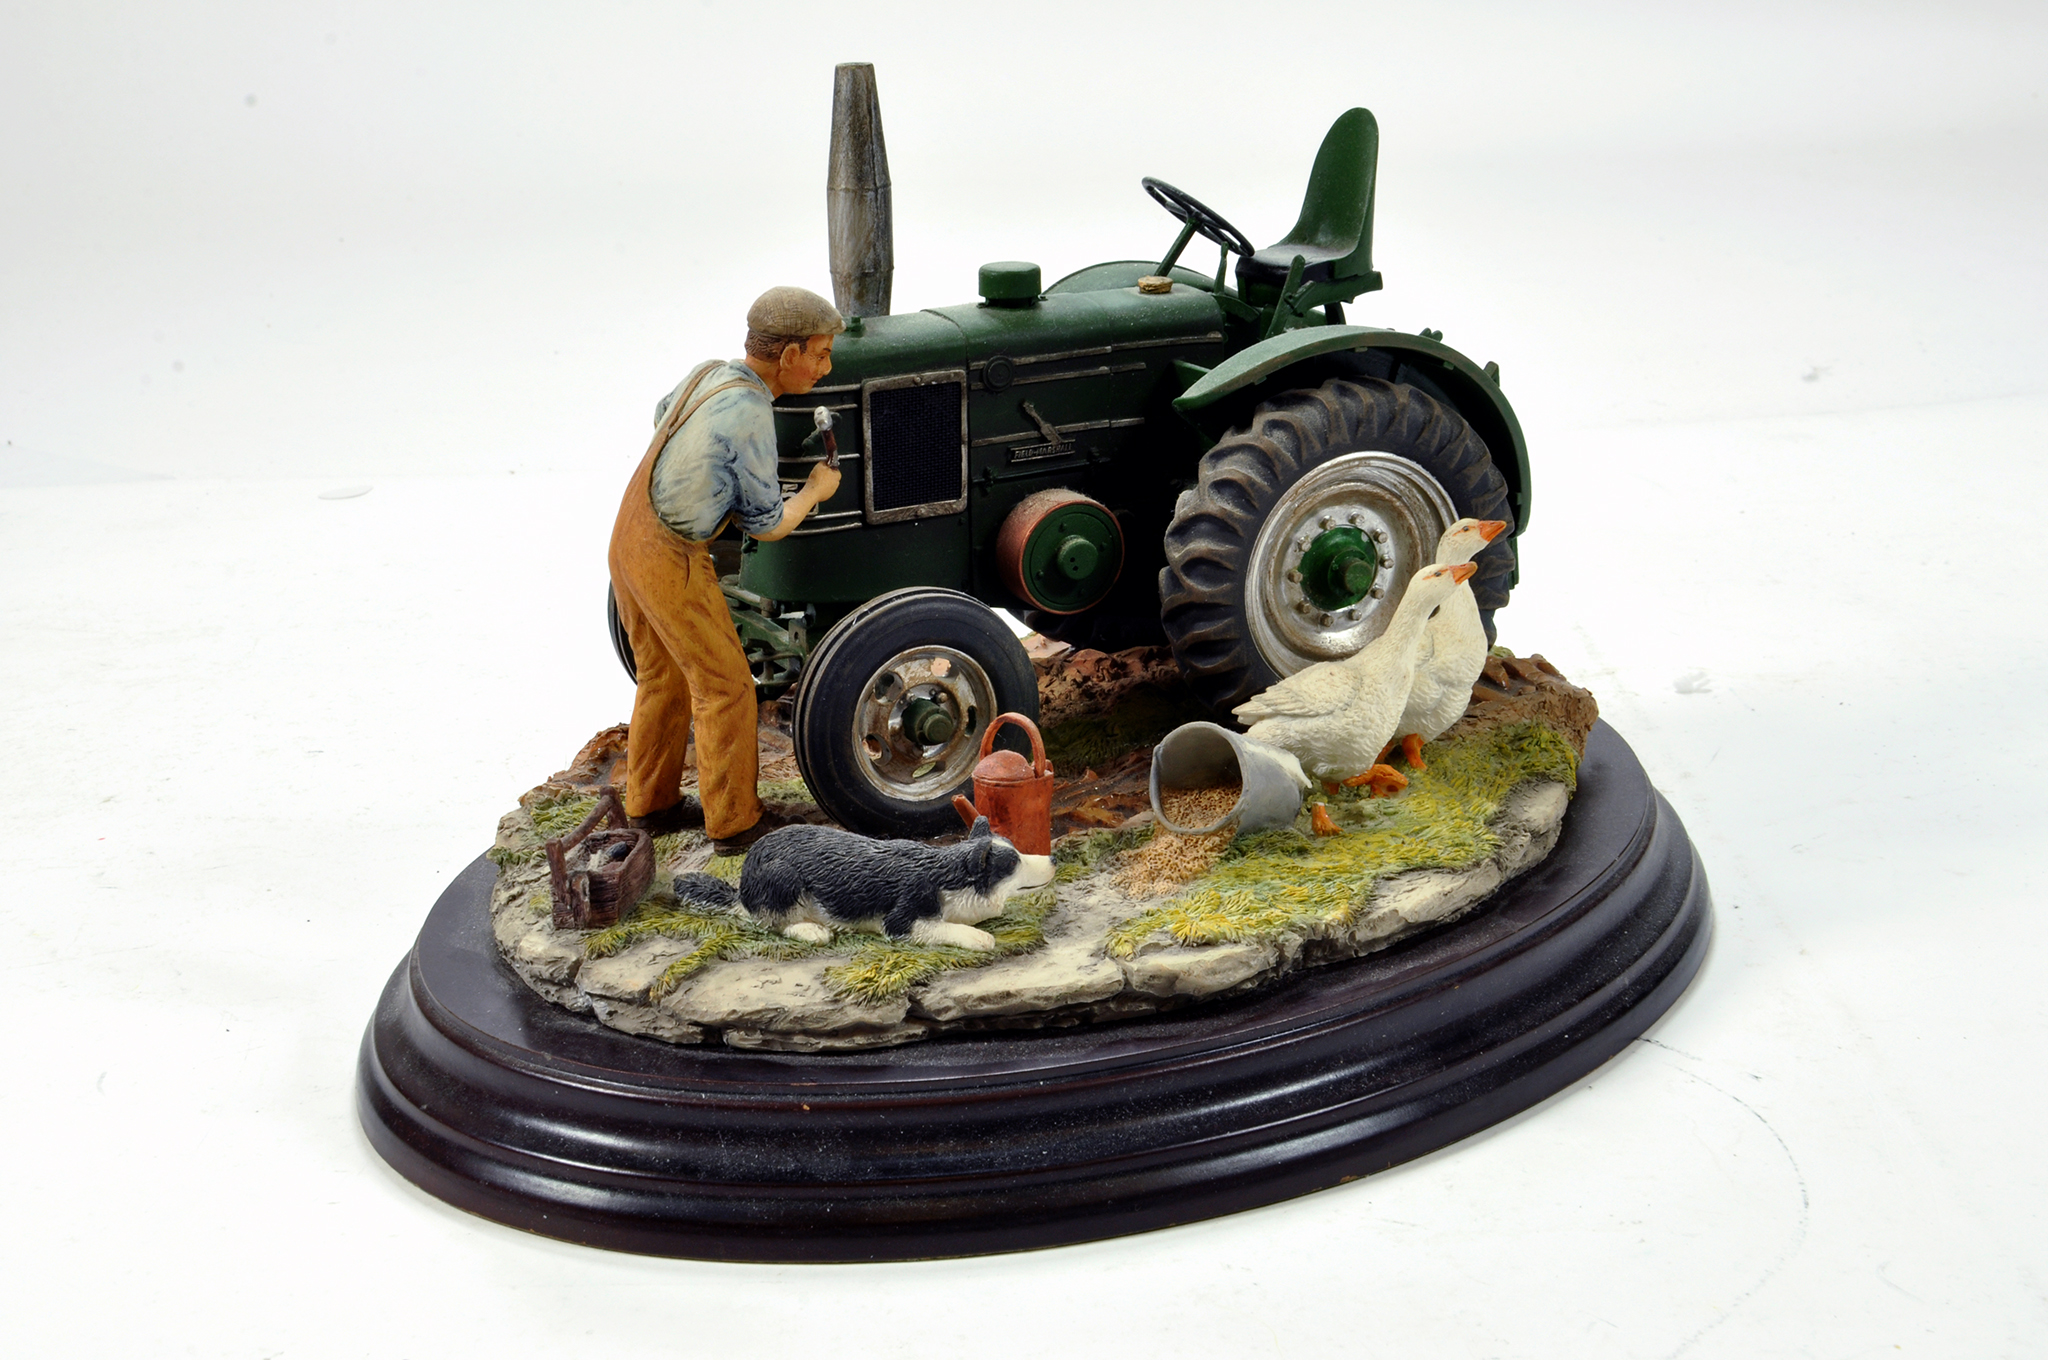 Lot 803 - A static presentation piece comprising a Country Artists model featuring a Field Marshall Tractor.